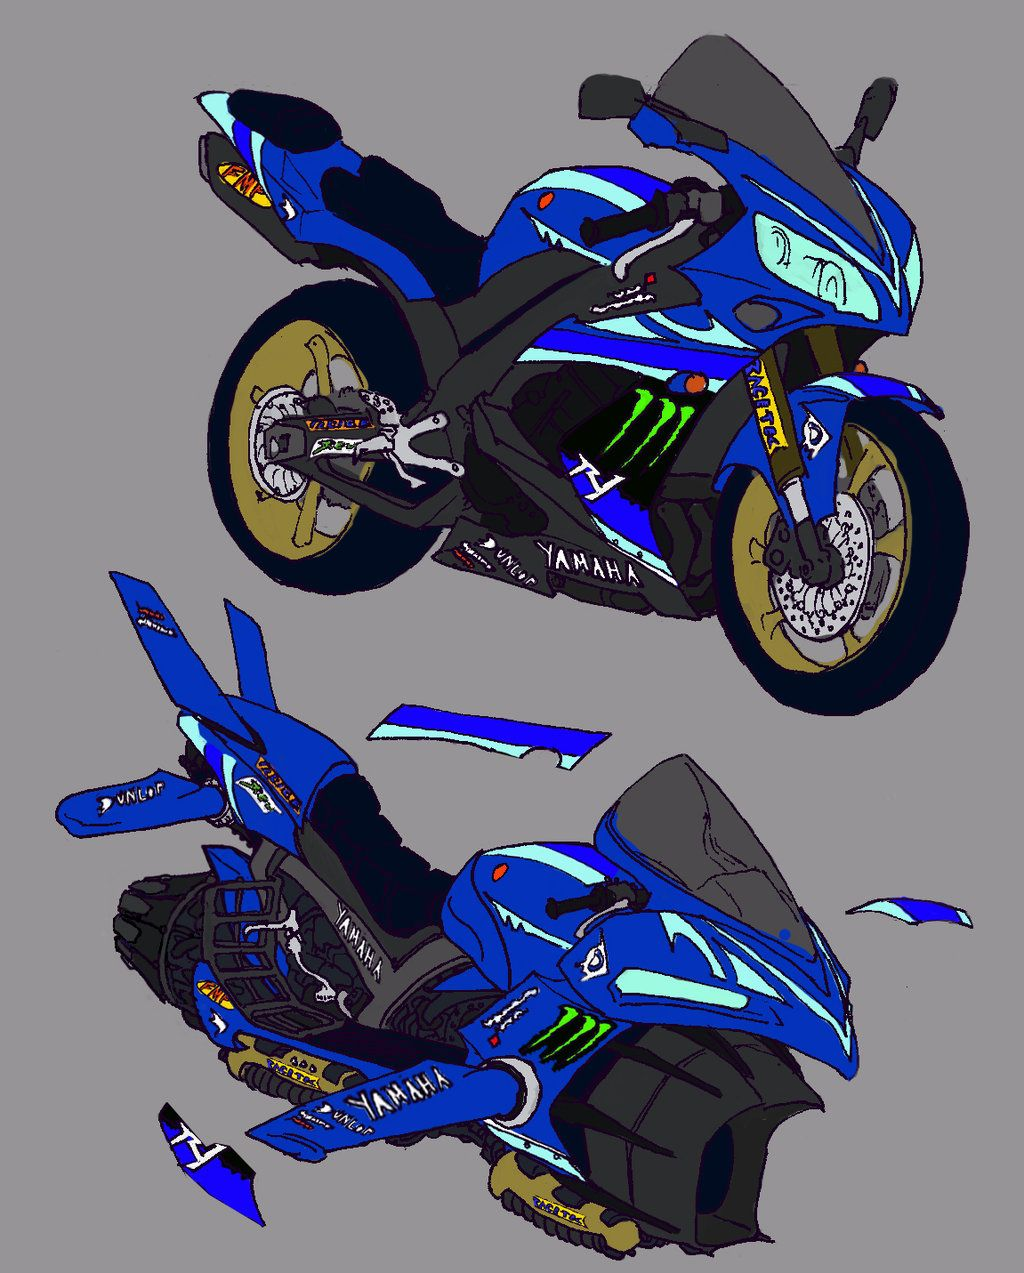 hover bike concept with decalsknosis.deviantart on